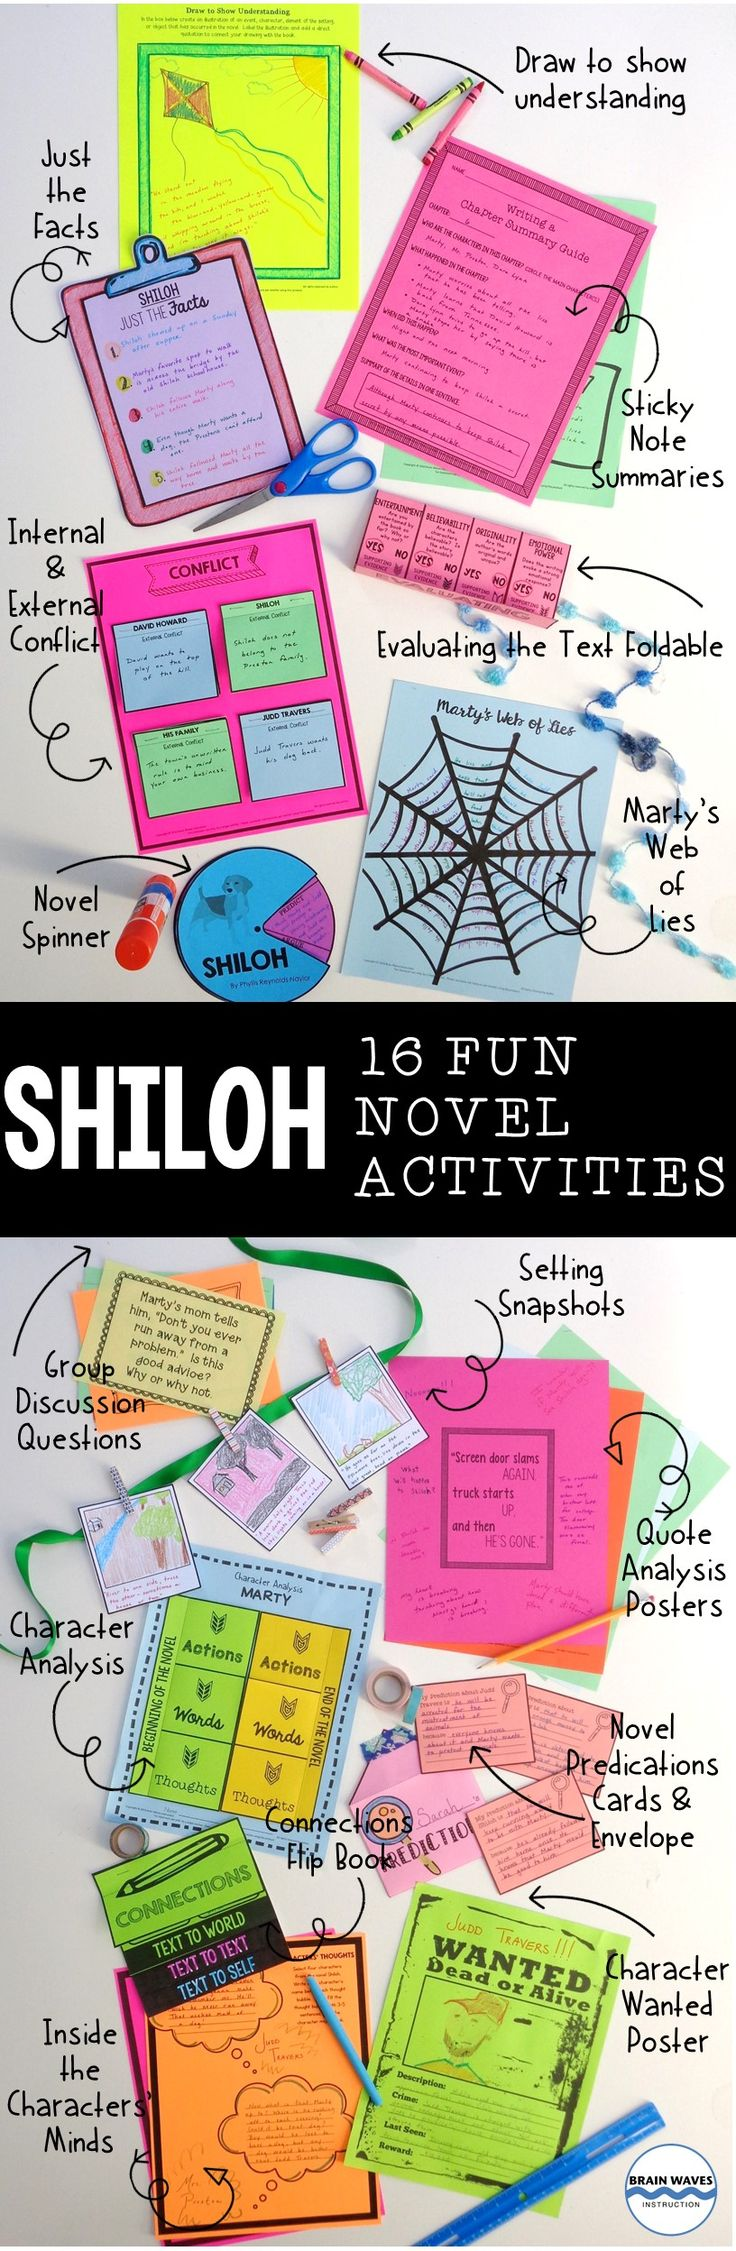 small resolution of Shiloh Lessons and Activities - 16 Engaging Chapter-by-Chapter Activities    Novel activities